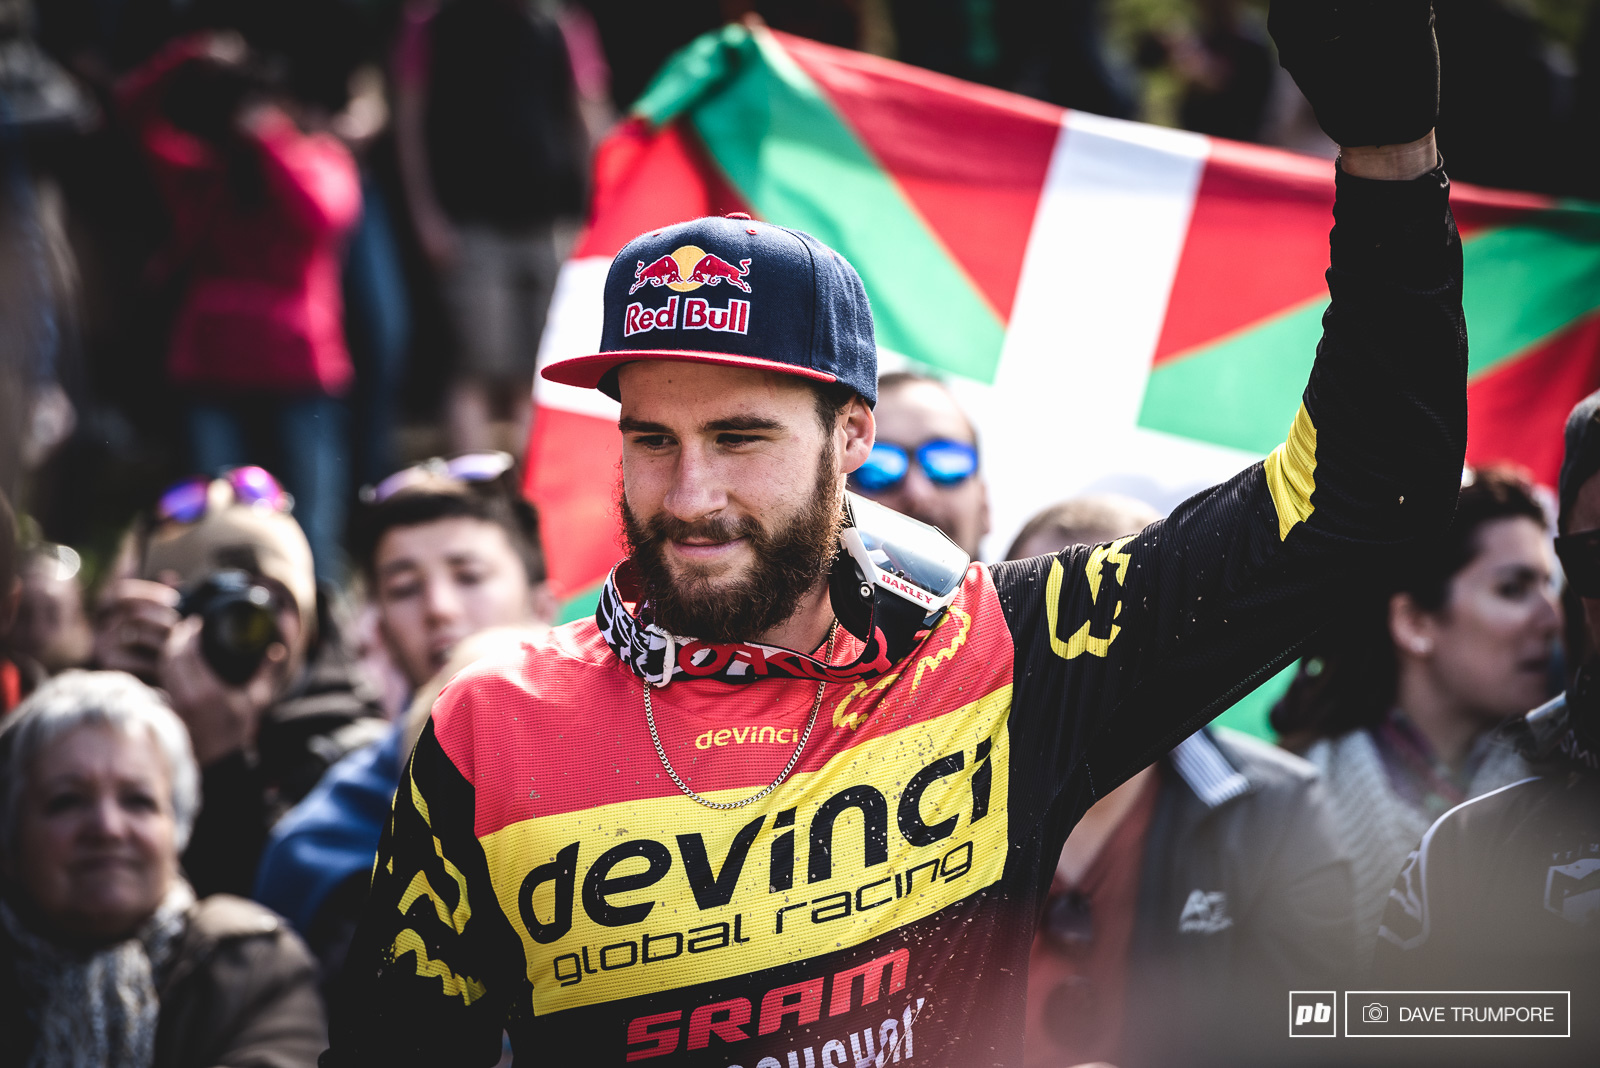 The Canadian Chainsaw is right back where he left off after 2013. No more injuries... Just podiums.